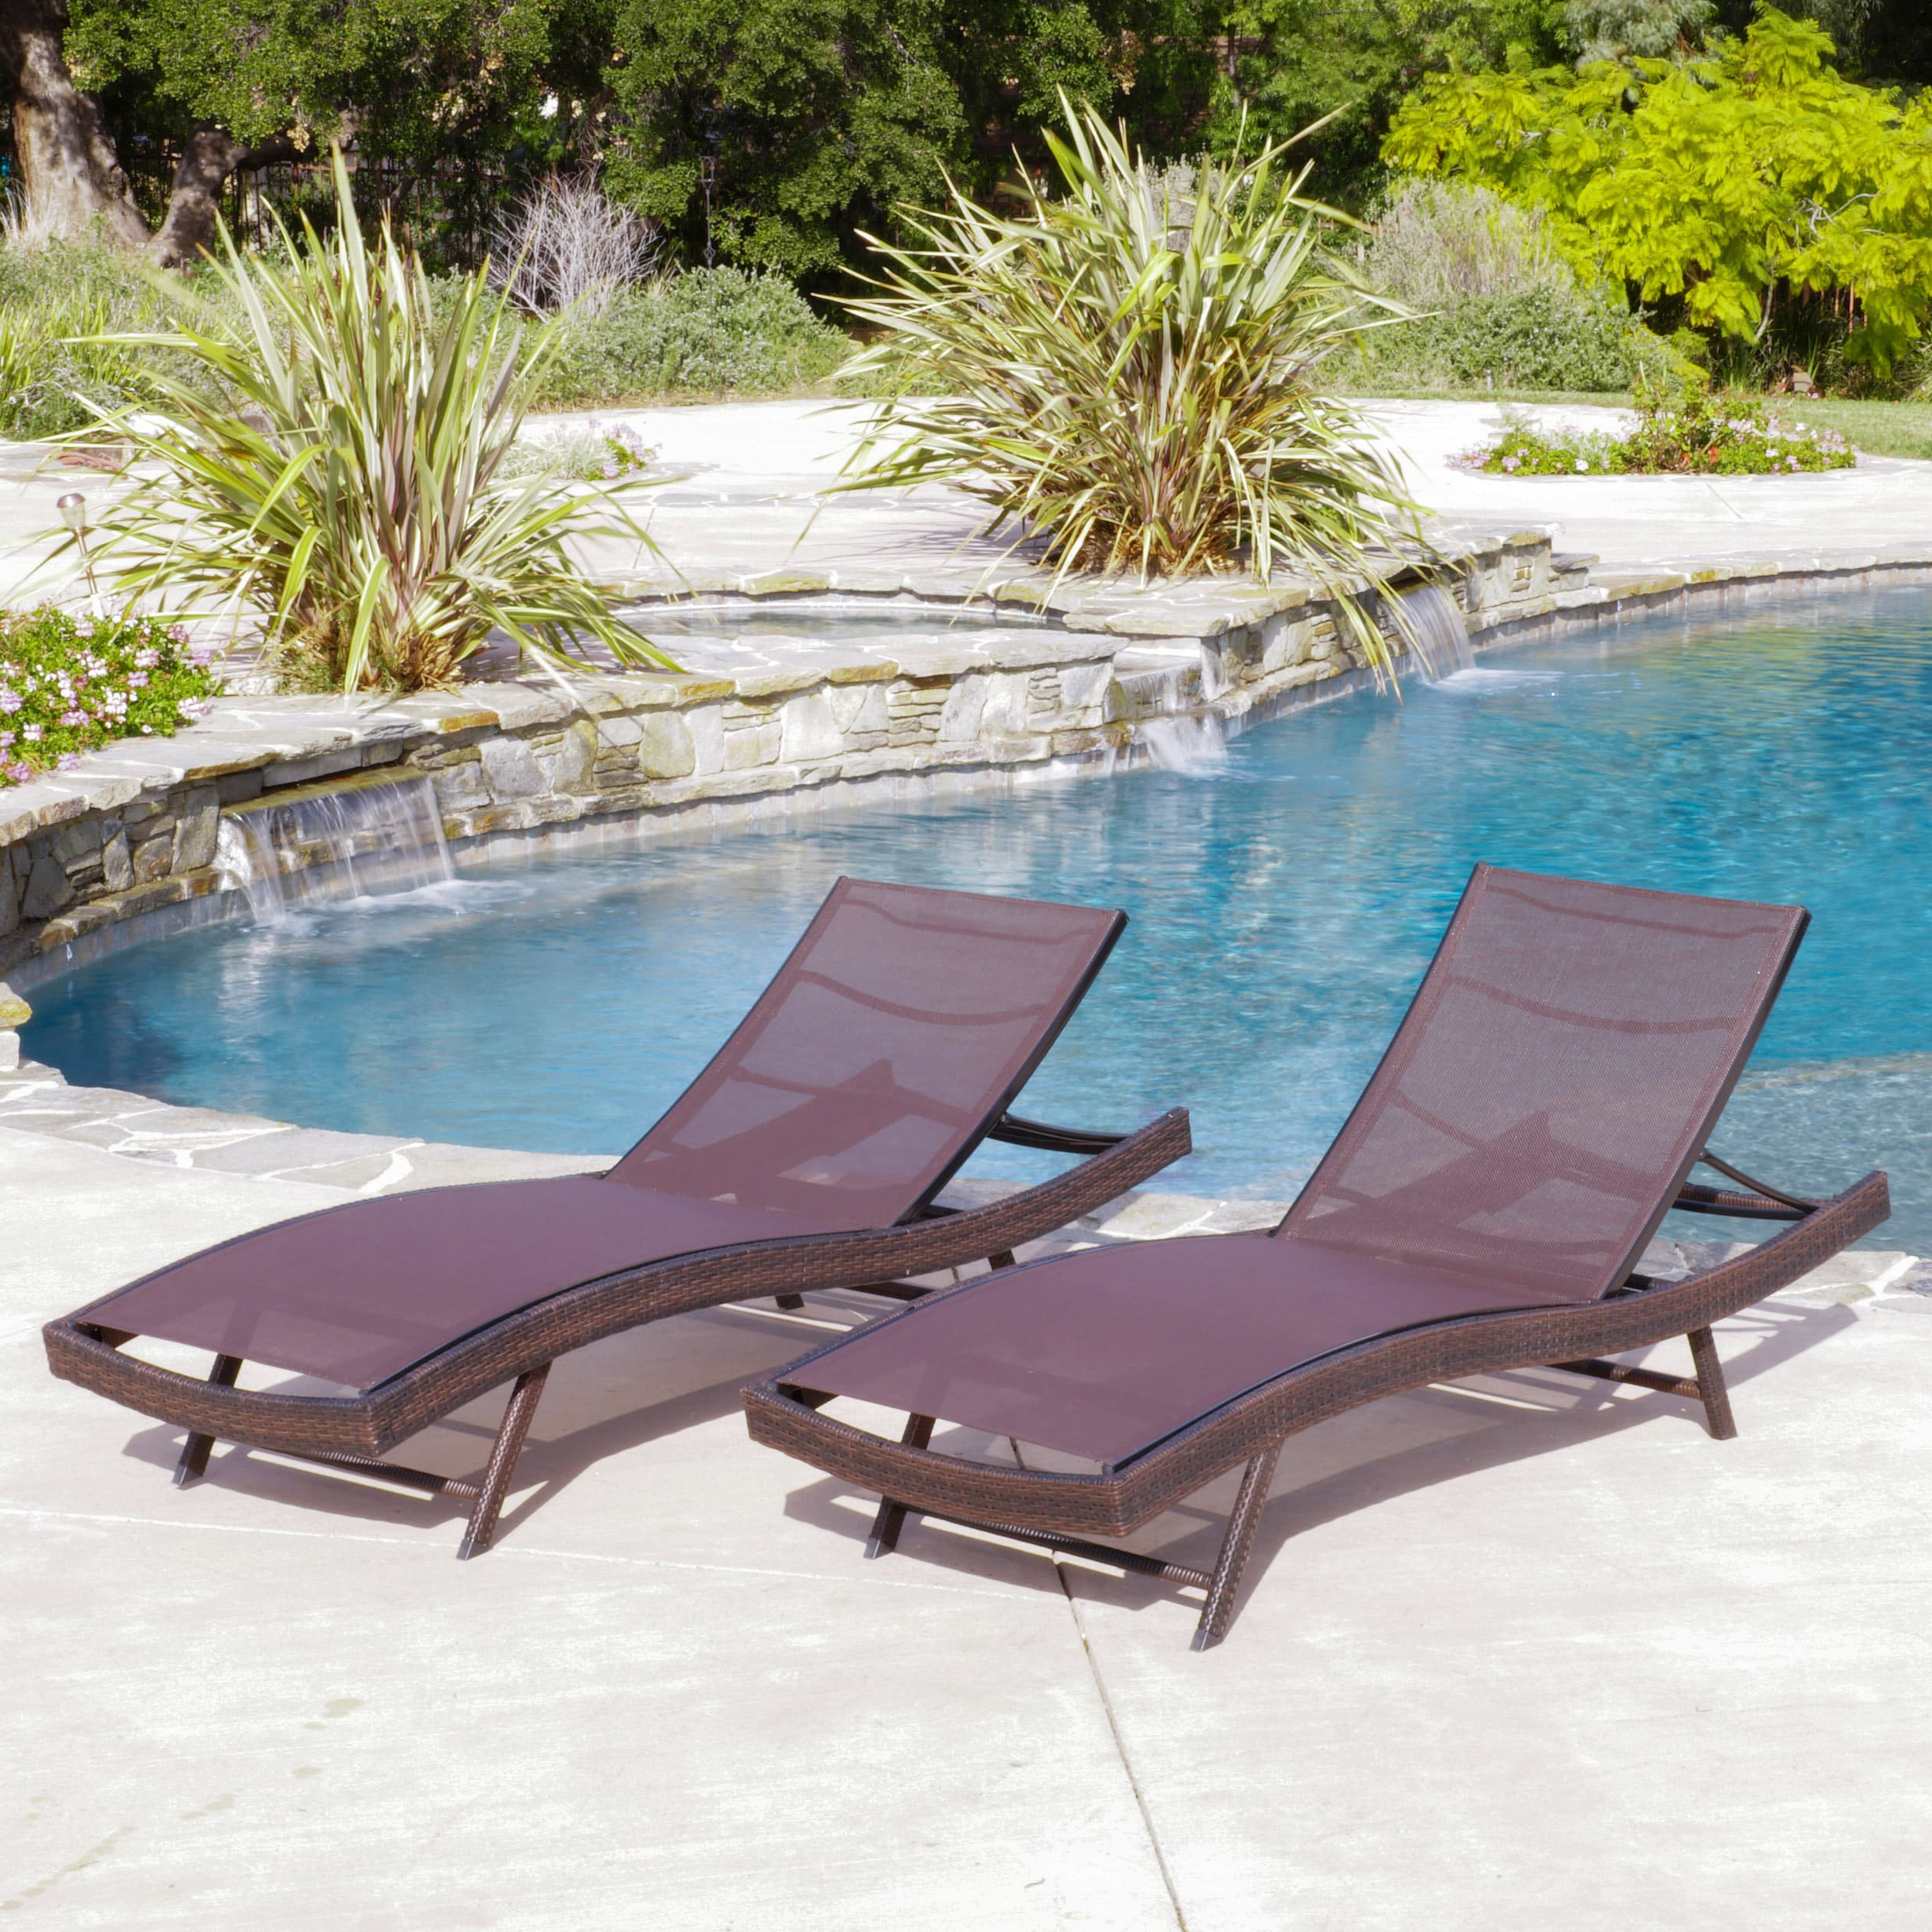 Kauai Outdoor Wicker Chaise Lounges With Regard To Best And Newest Christopher Knight Home Kauai Outdoor Chaise Lounge (set Of 2) (View 21 of 25)